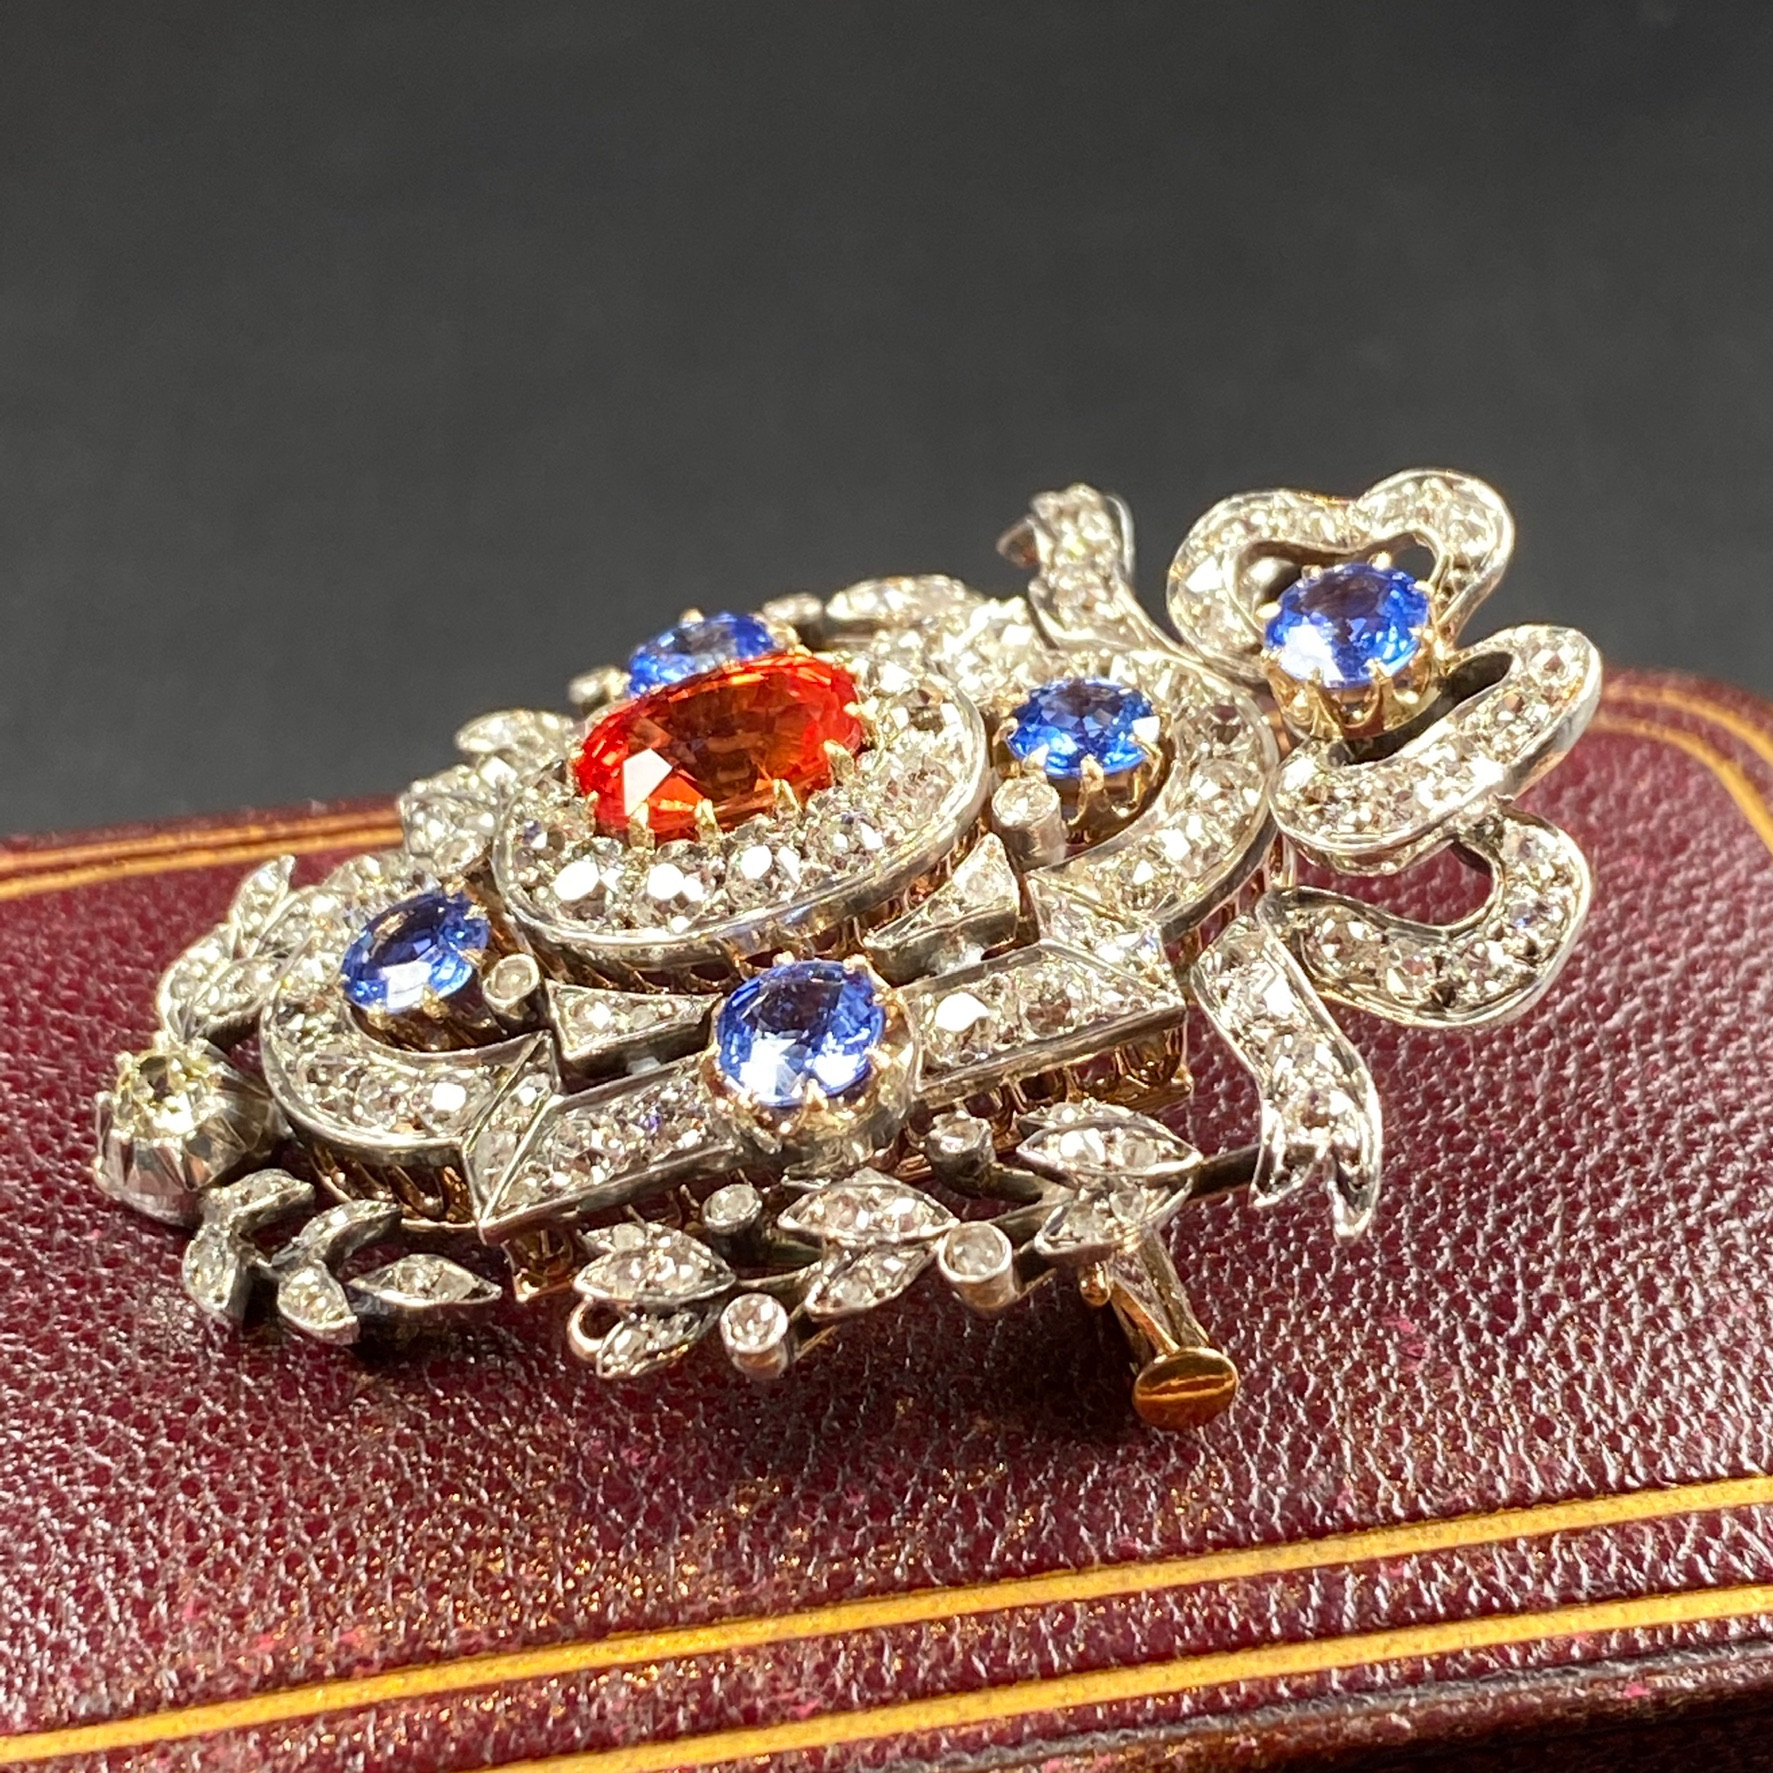 Sapphire Brooch, Victorian - Image 6 of 8